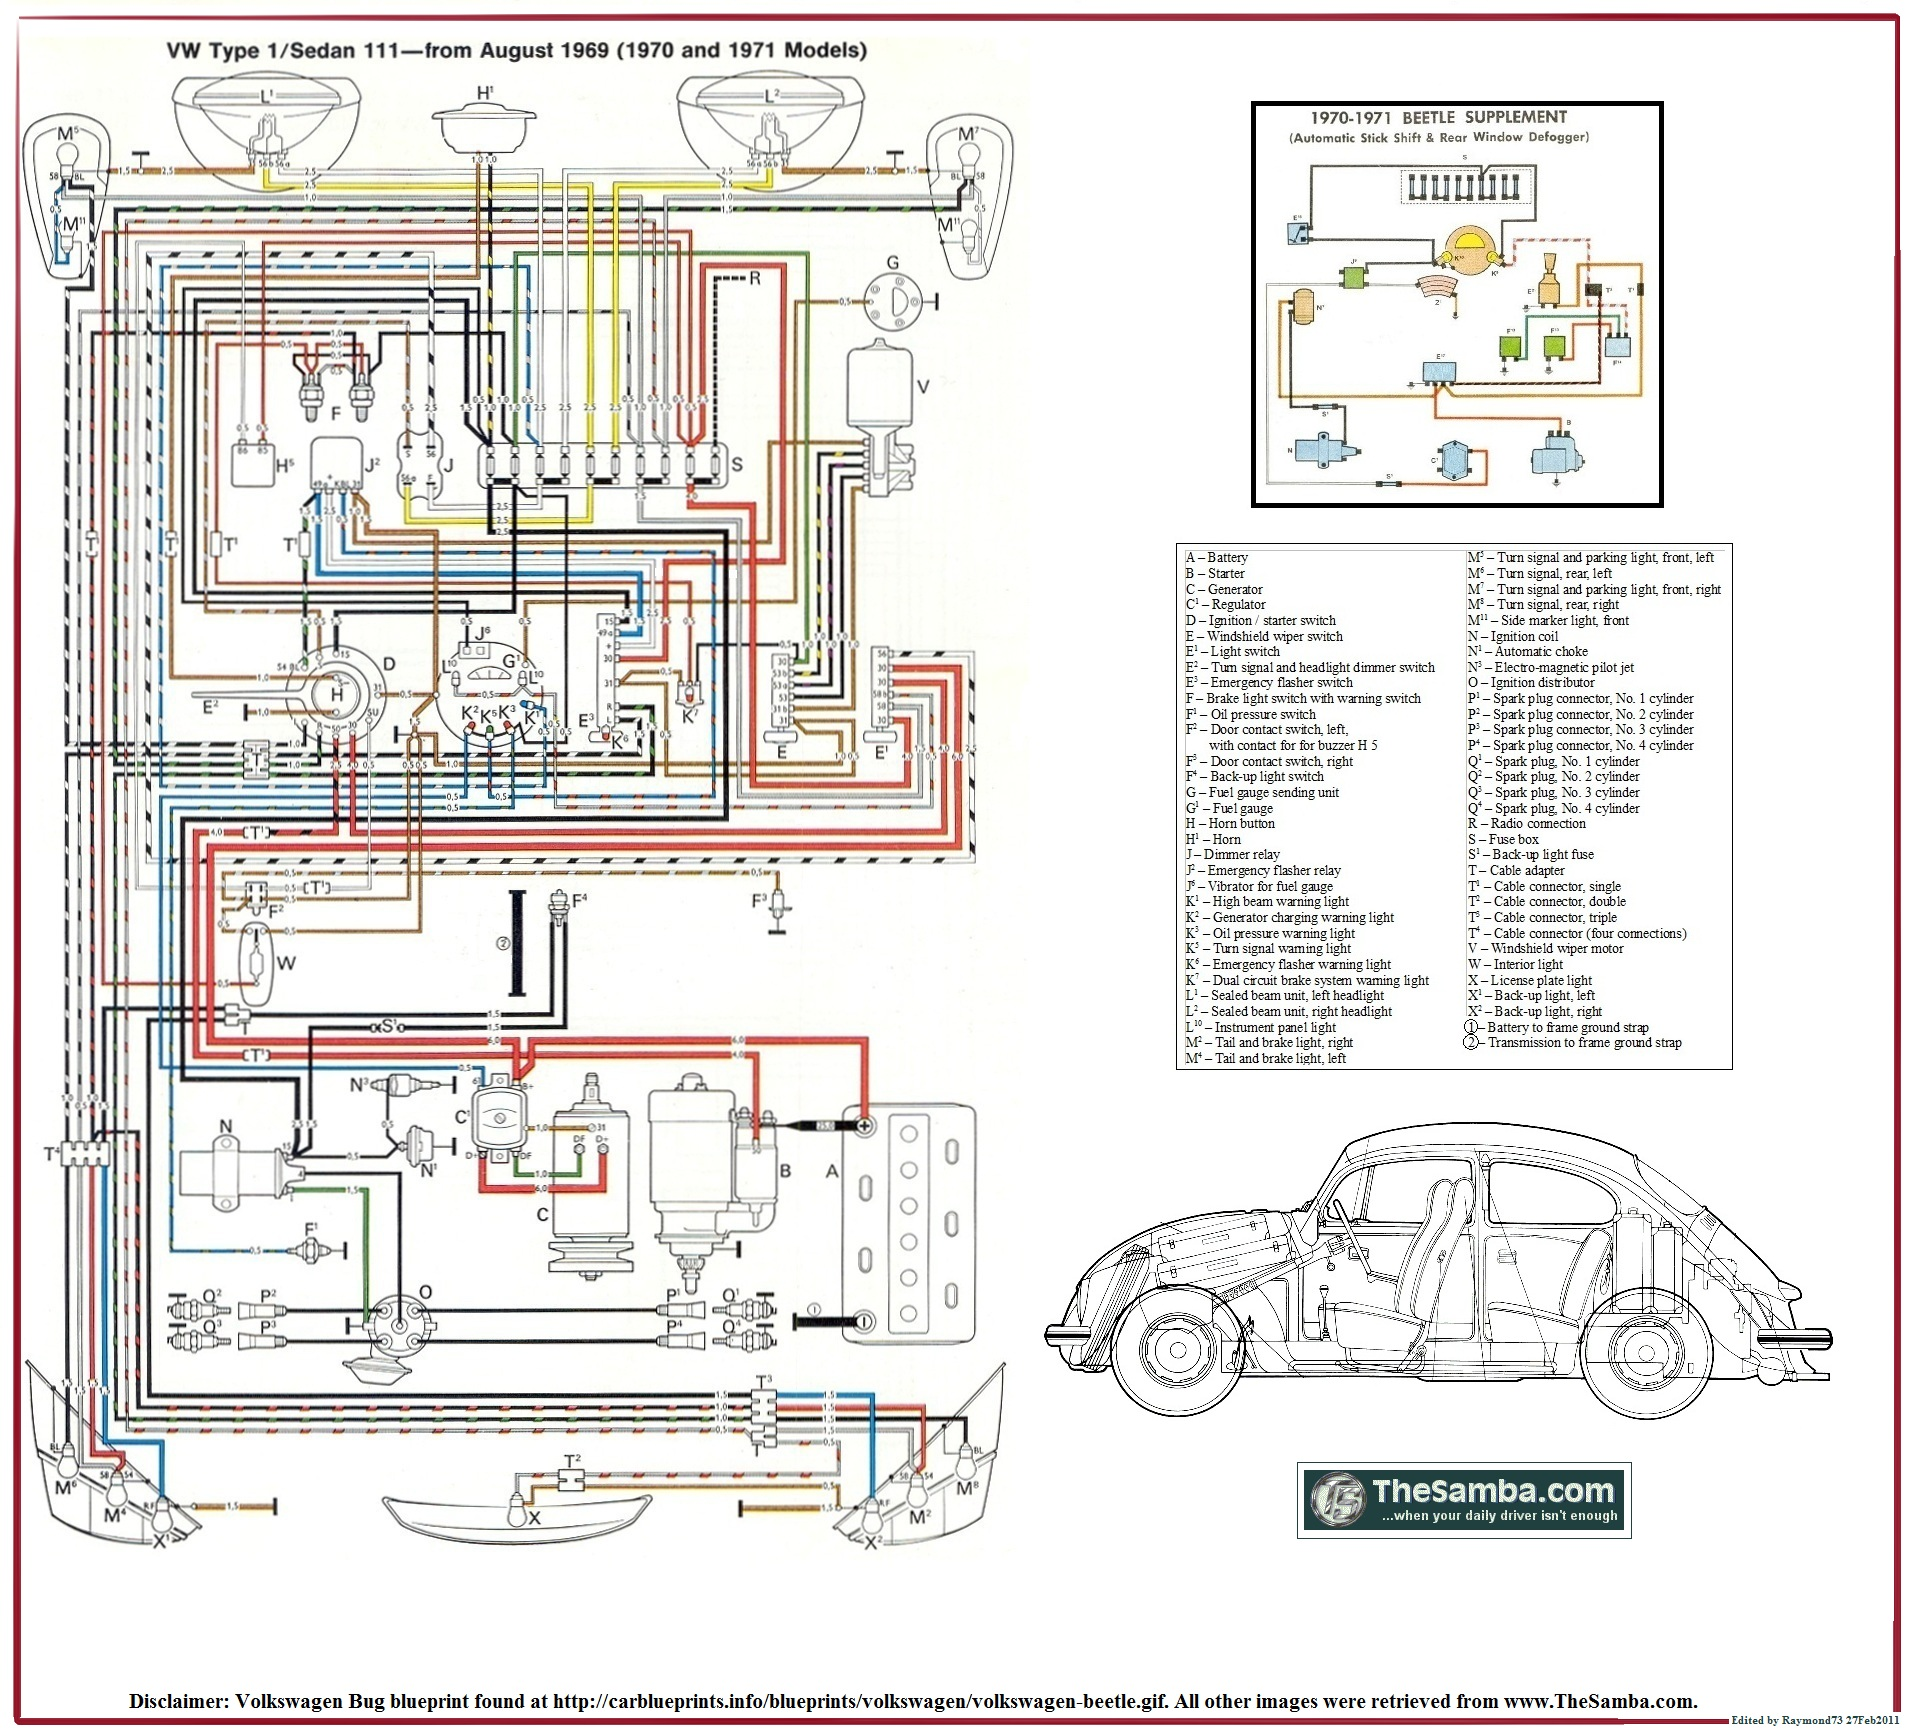 1970_VW_Type_1_Poster thesamba com beetle late model super 1968 up view topic vw beetle wiring diagram at cita.asia